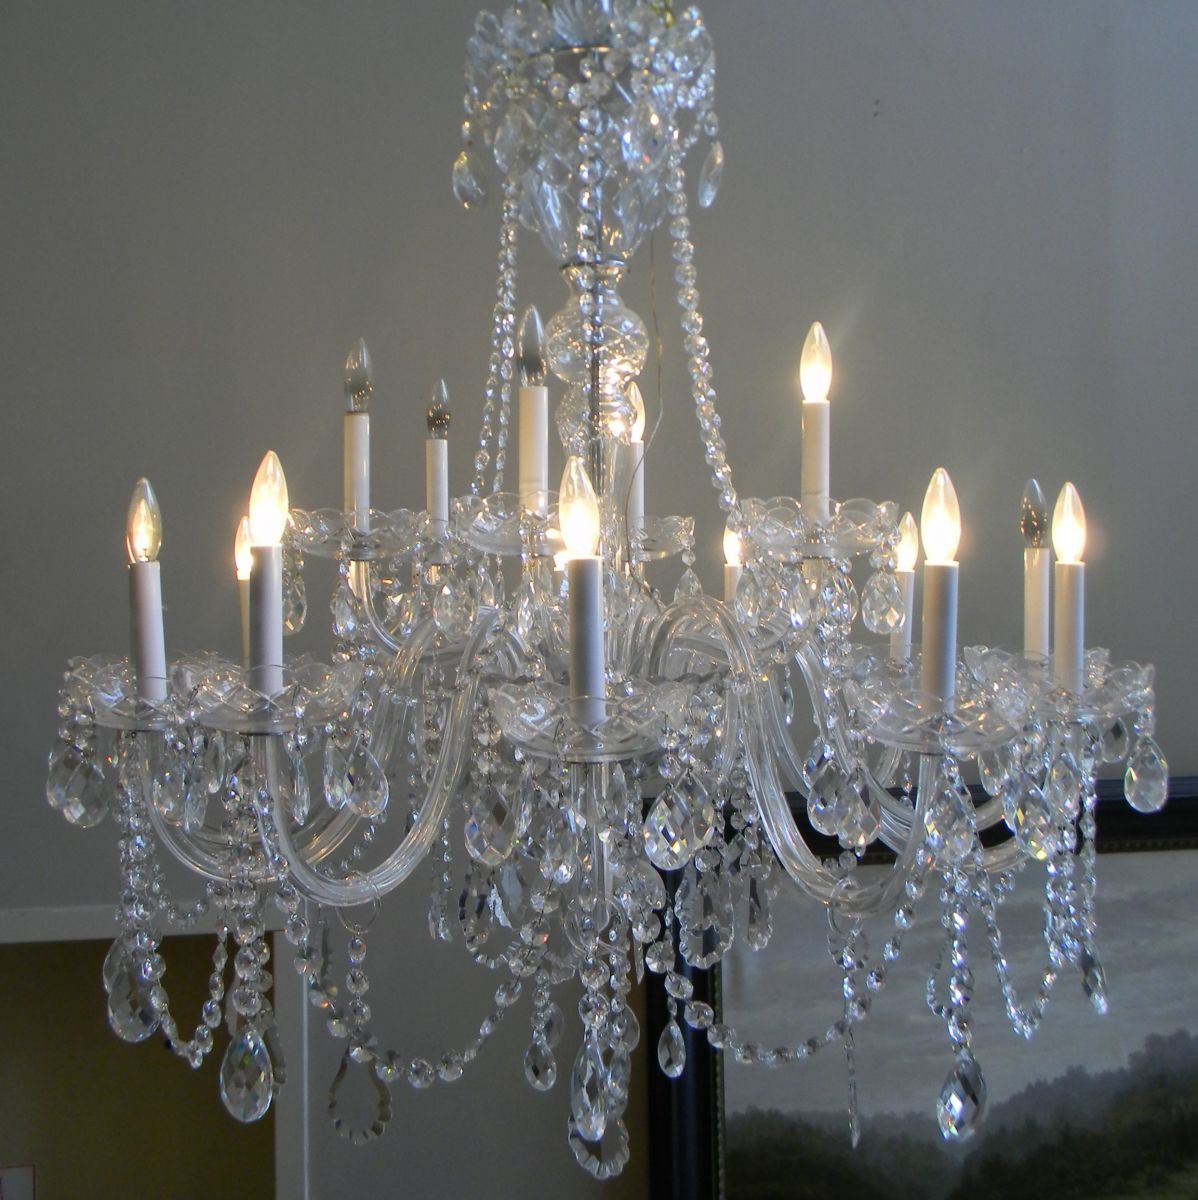 Pin by m bu on chandeliers pinterest chandeliers chandeliers aloadofball Image collections